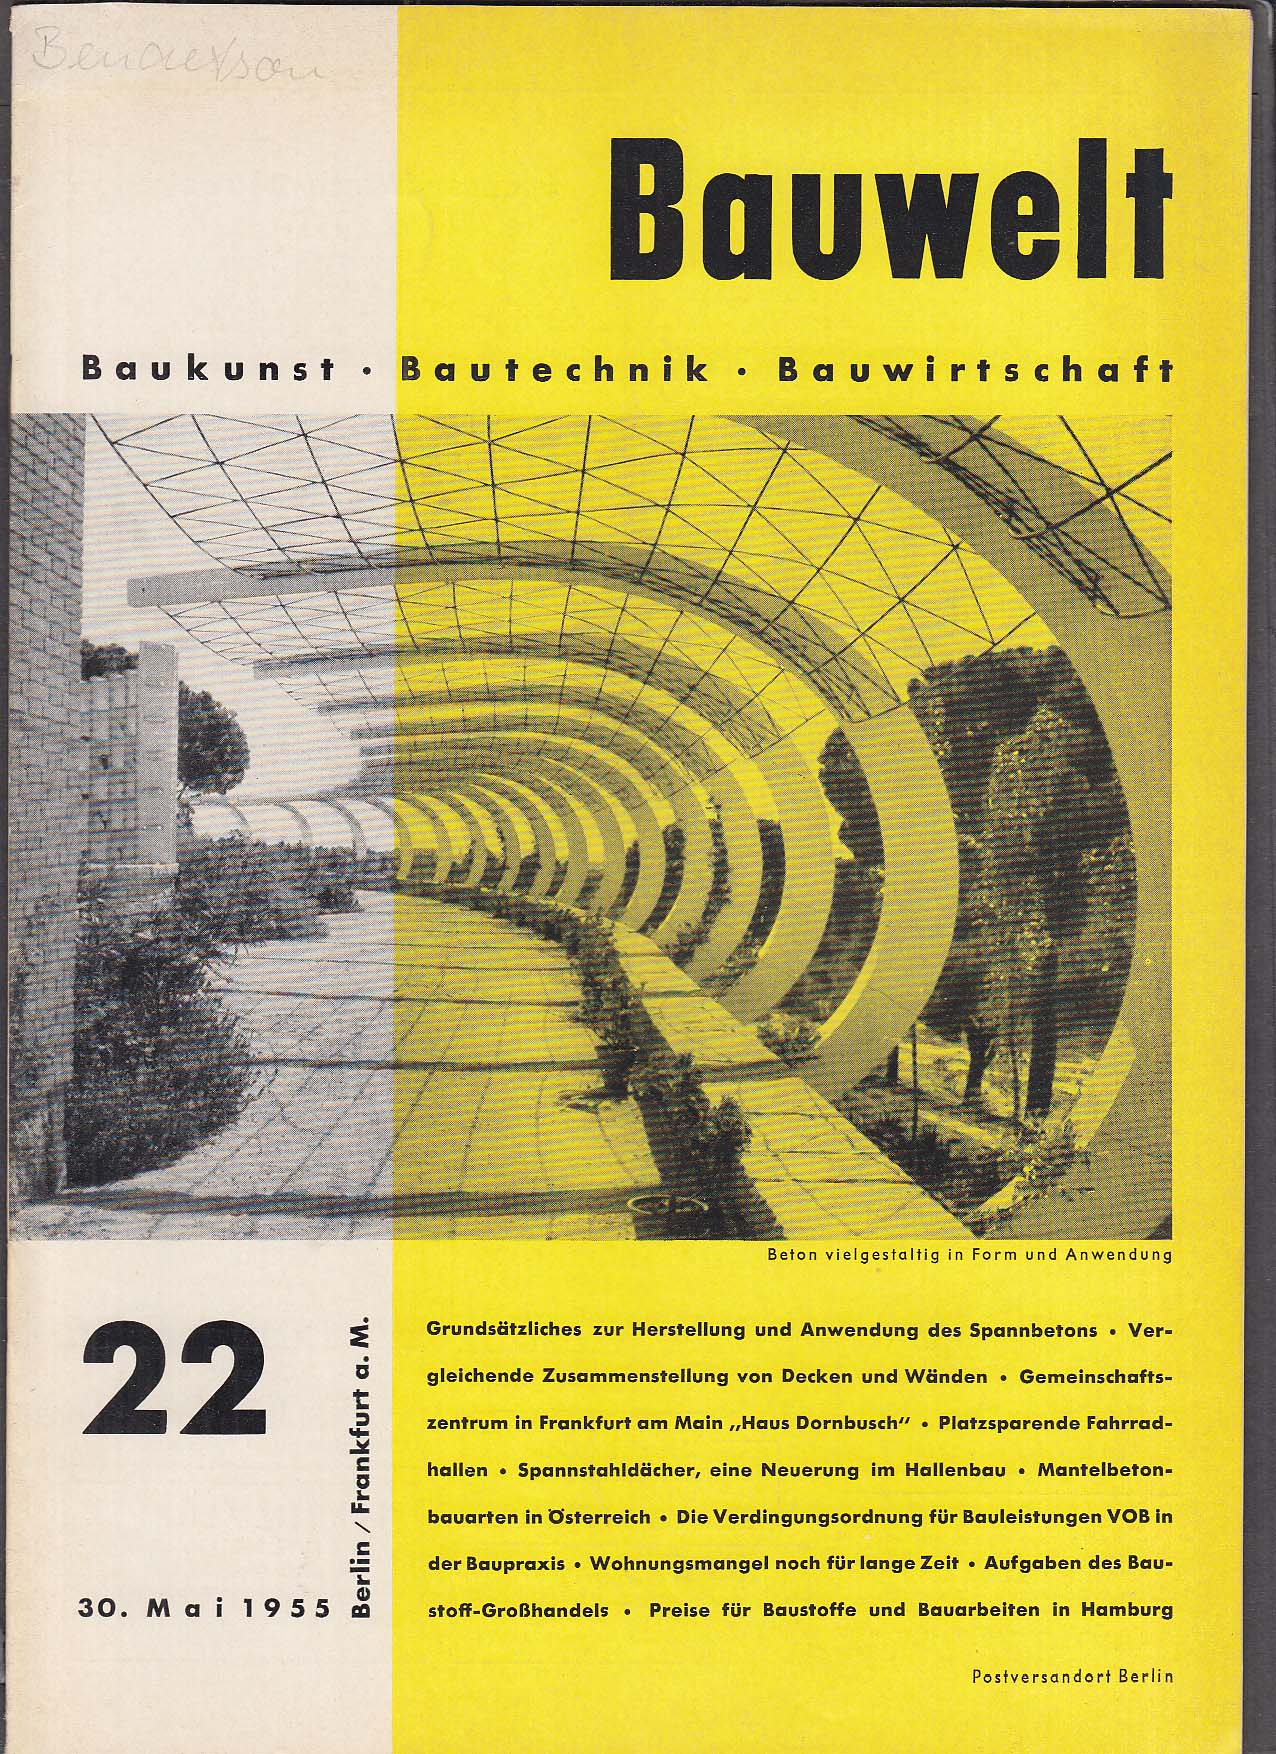 Bauwelt German architecture magazine 5/30/1955 22